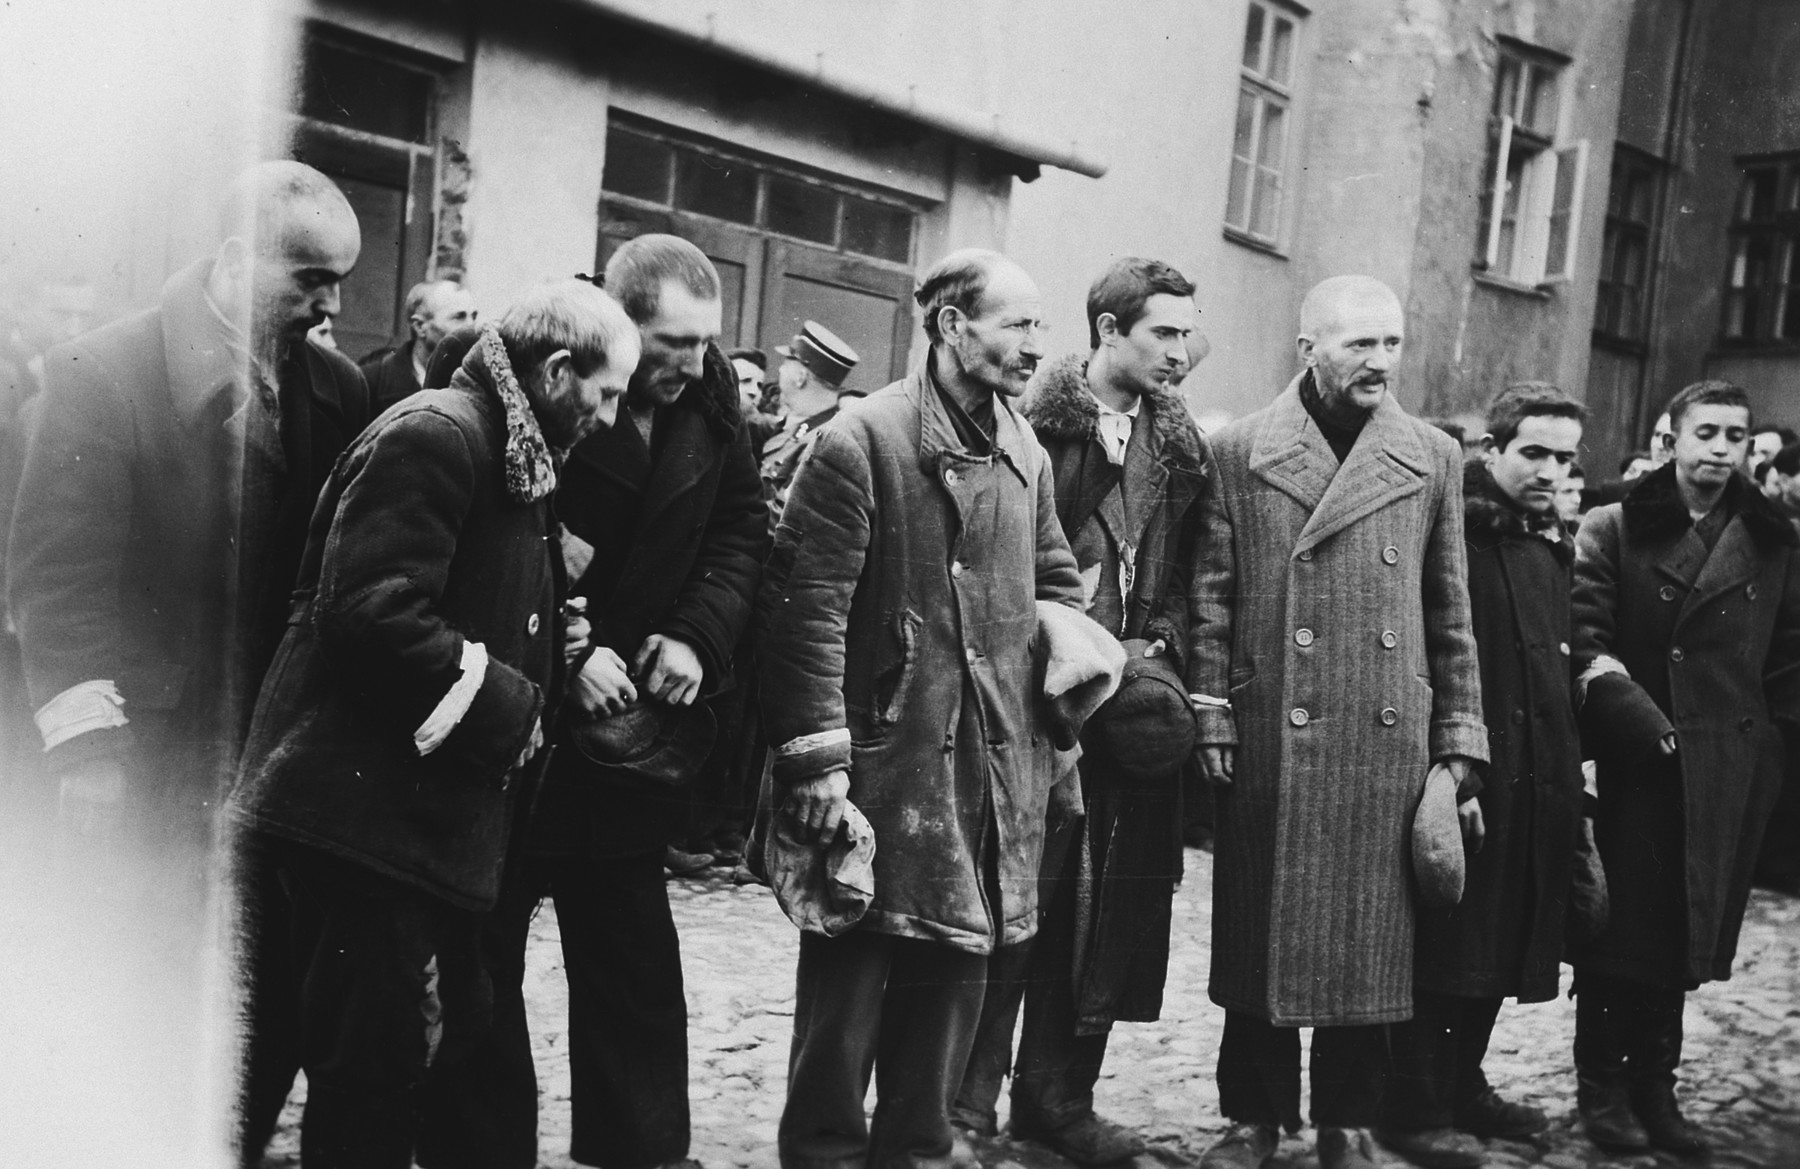 Jewish men are forced to stand in a line holding their hats in their hands [perhaps right after having had their beards forcibly shaven].